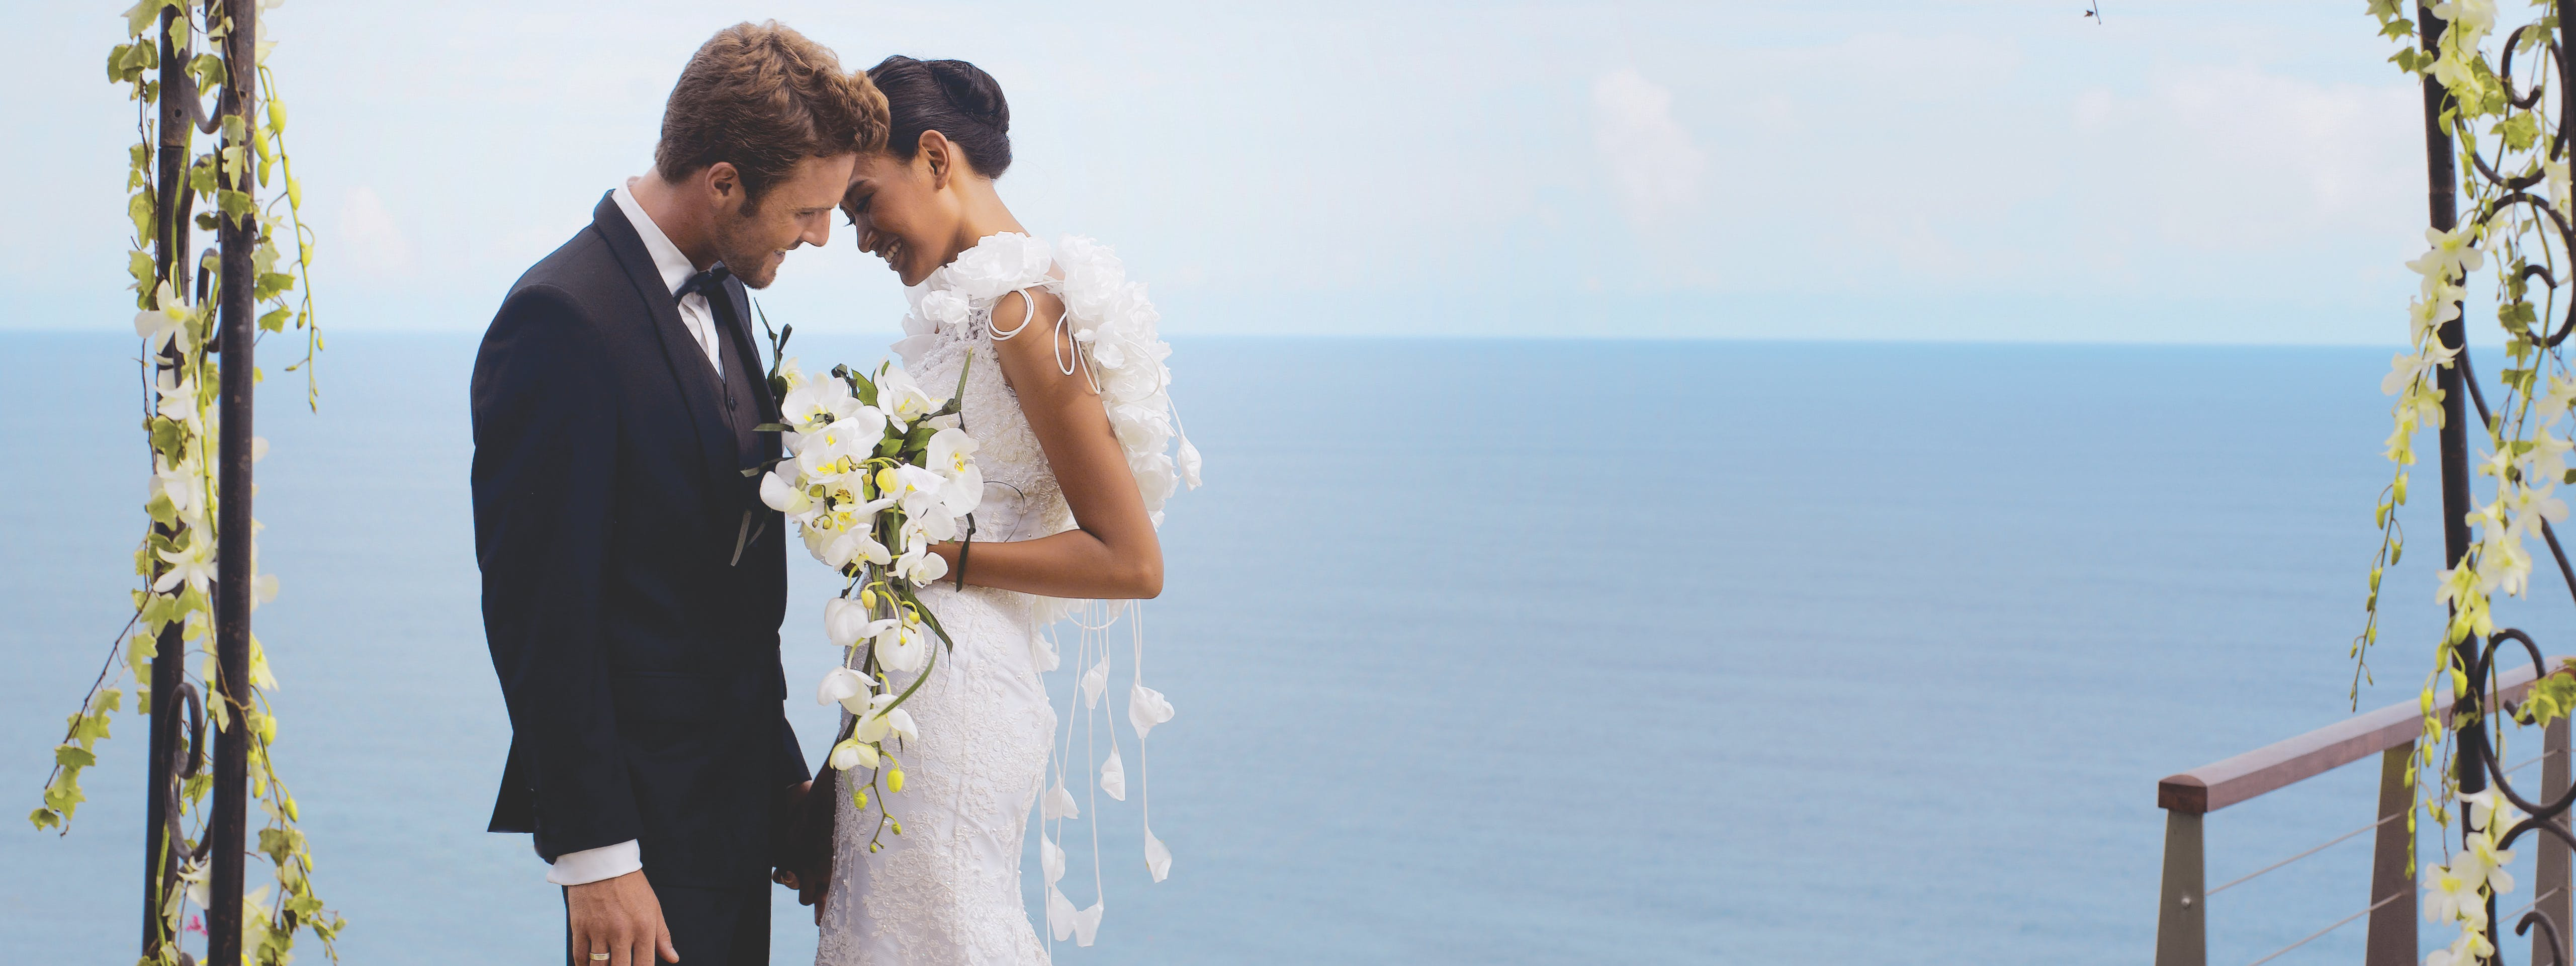 The Wedding at The edge Luxury Villa Resort, Uluwatu Bali